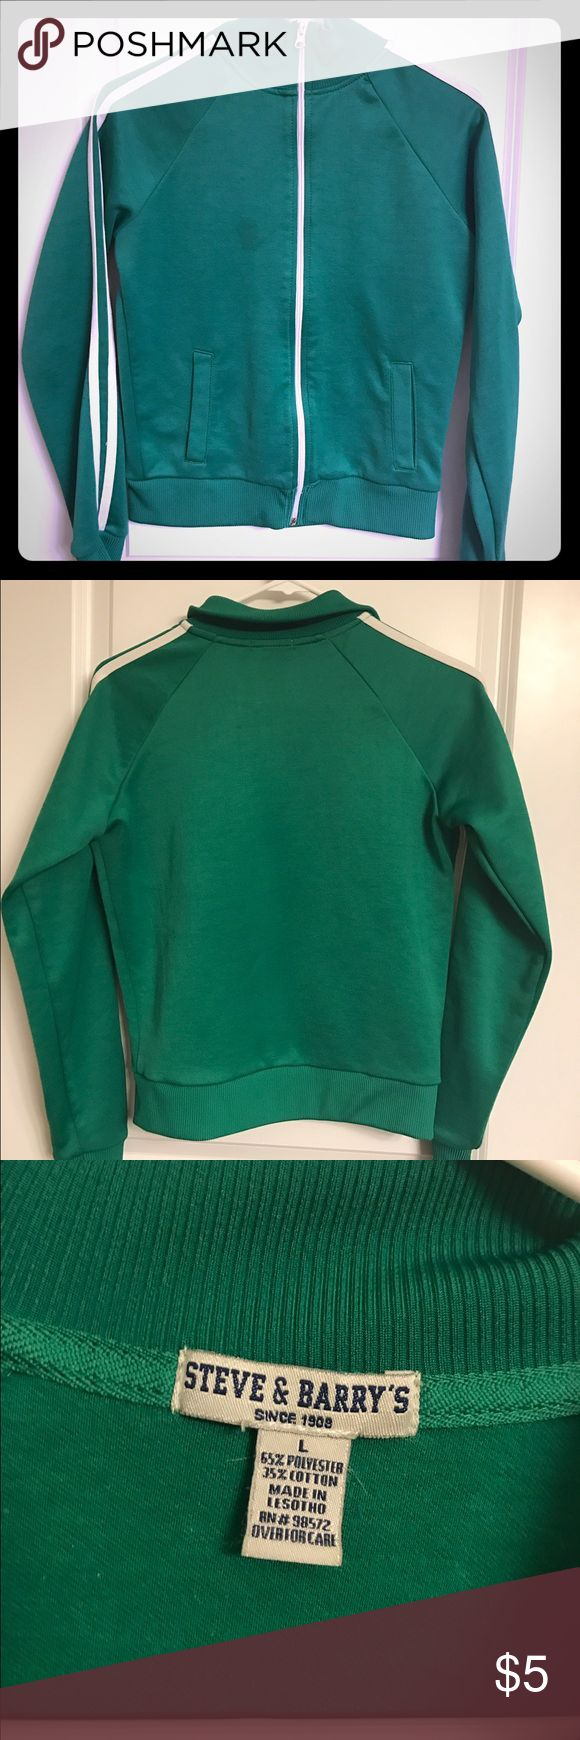 Green athletic zip up Athletic jacket from Steve and Barry's. Children's large but fits like a women's small. Has a small faded mark to the left of the zipper as shown in photo. Tops Sweatshirts & Hoodies